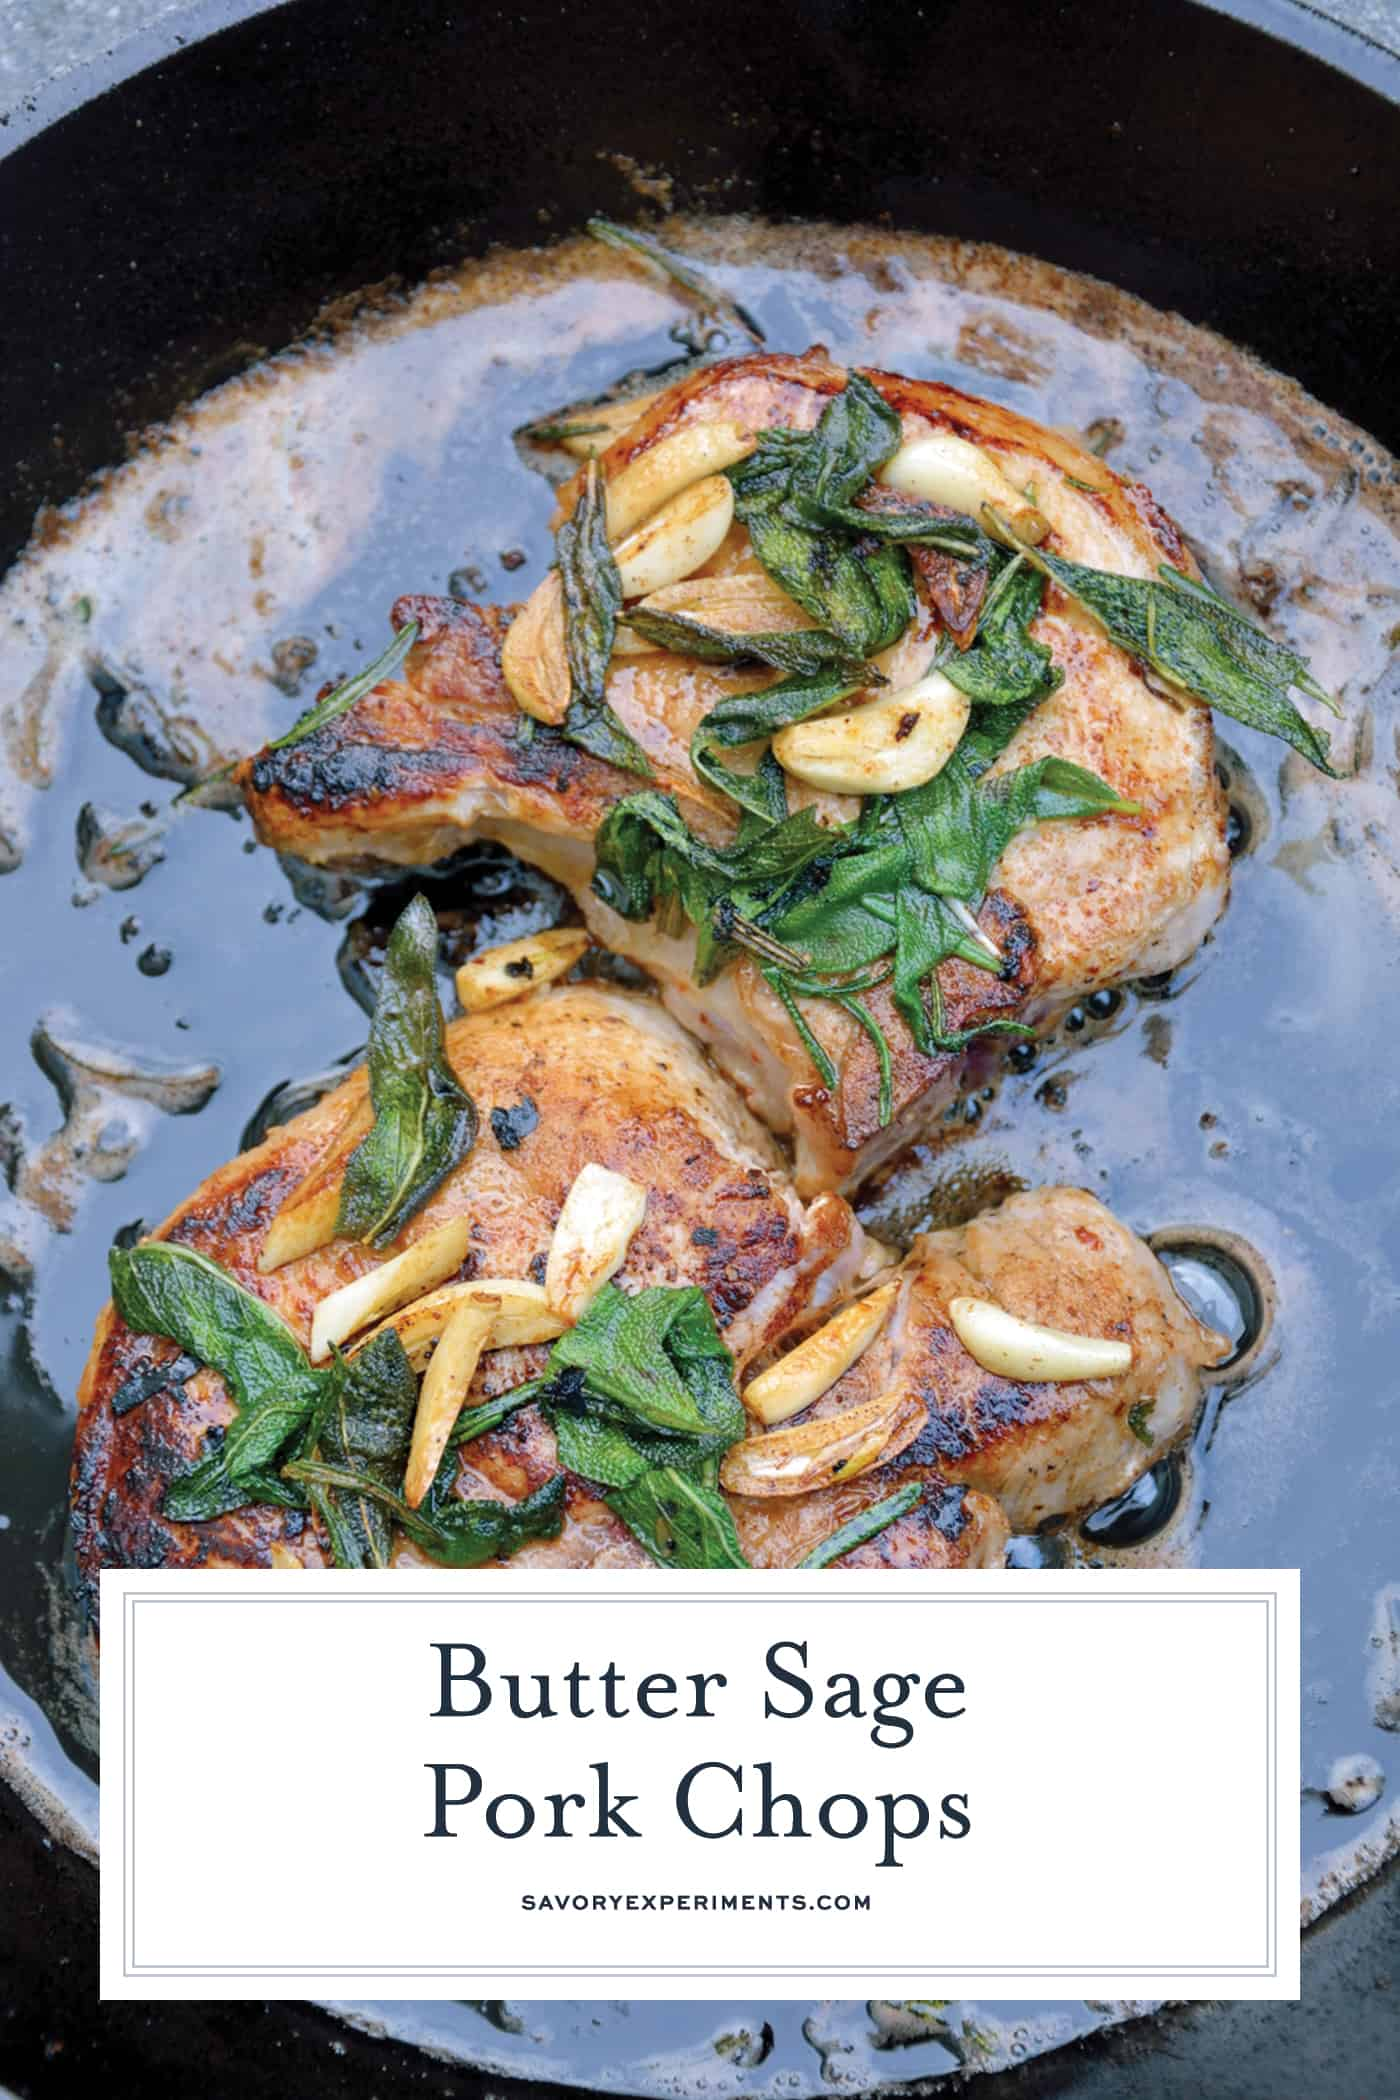 Butter Sage Pork Chops are pan seared pork chops in a simple butter, garlic and sage sauce. Sear in cast iron and then finish in the oven for the best pork chop recipe ever!#porkchoprecipe #pansearedporkchops www.savoryexperiments.com